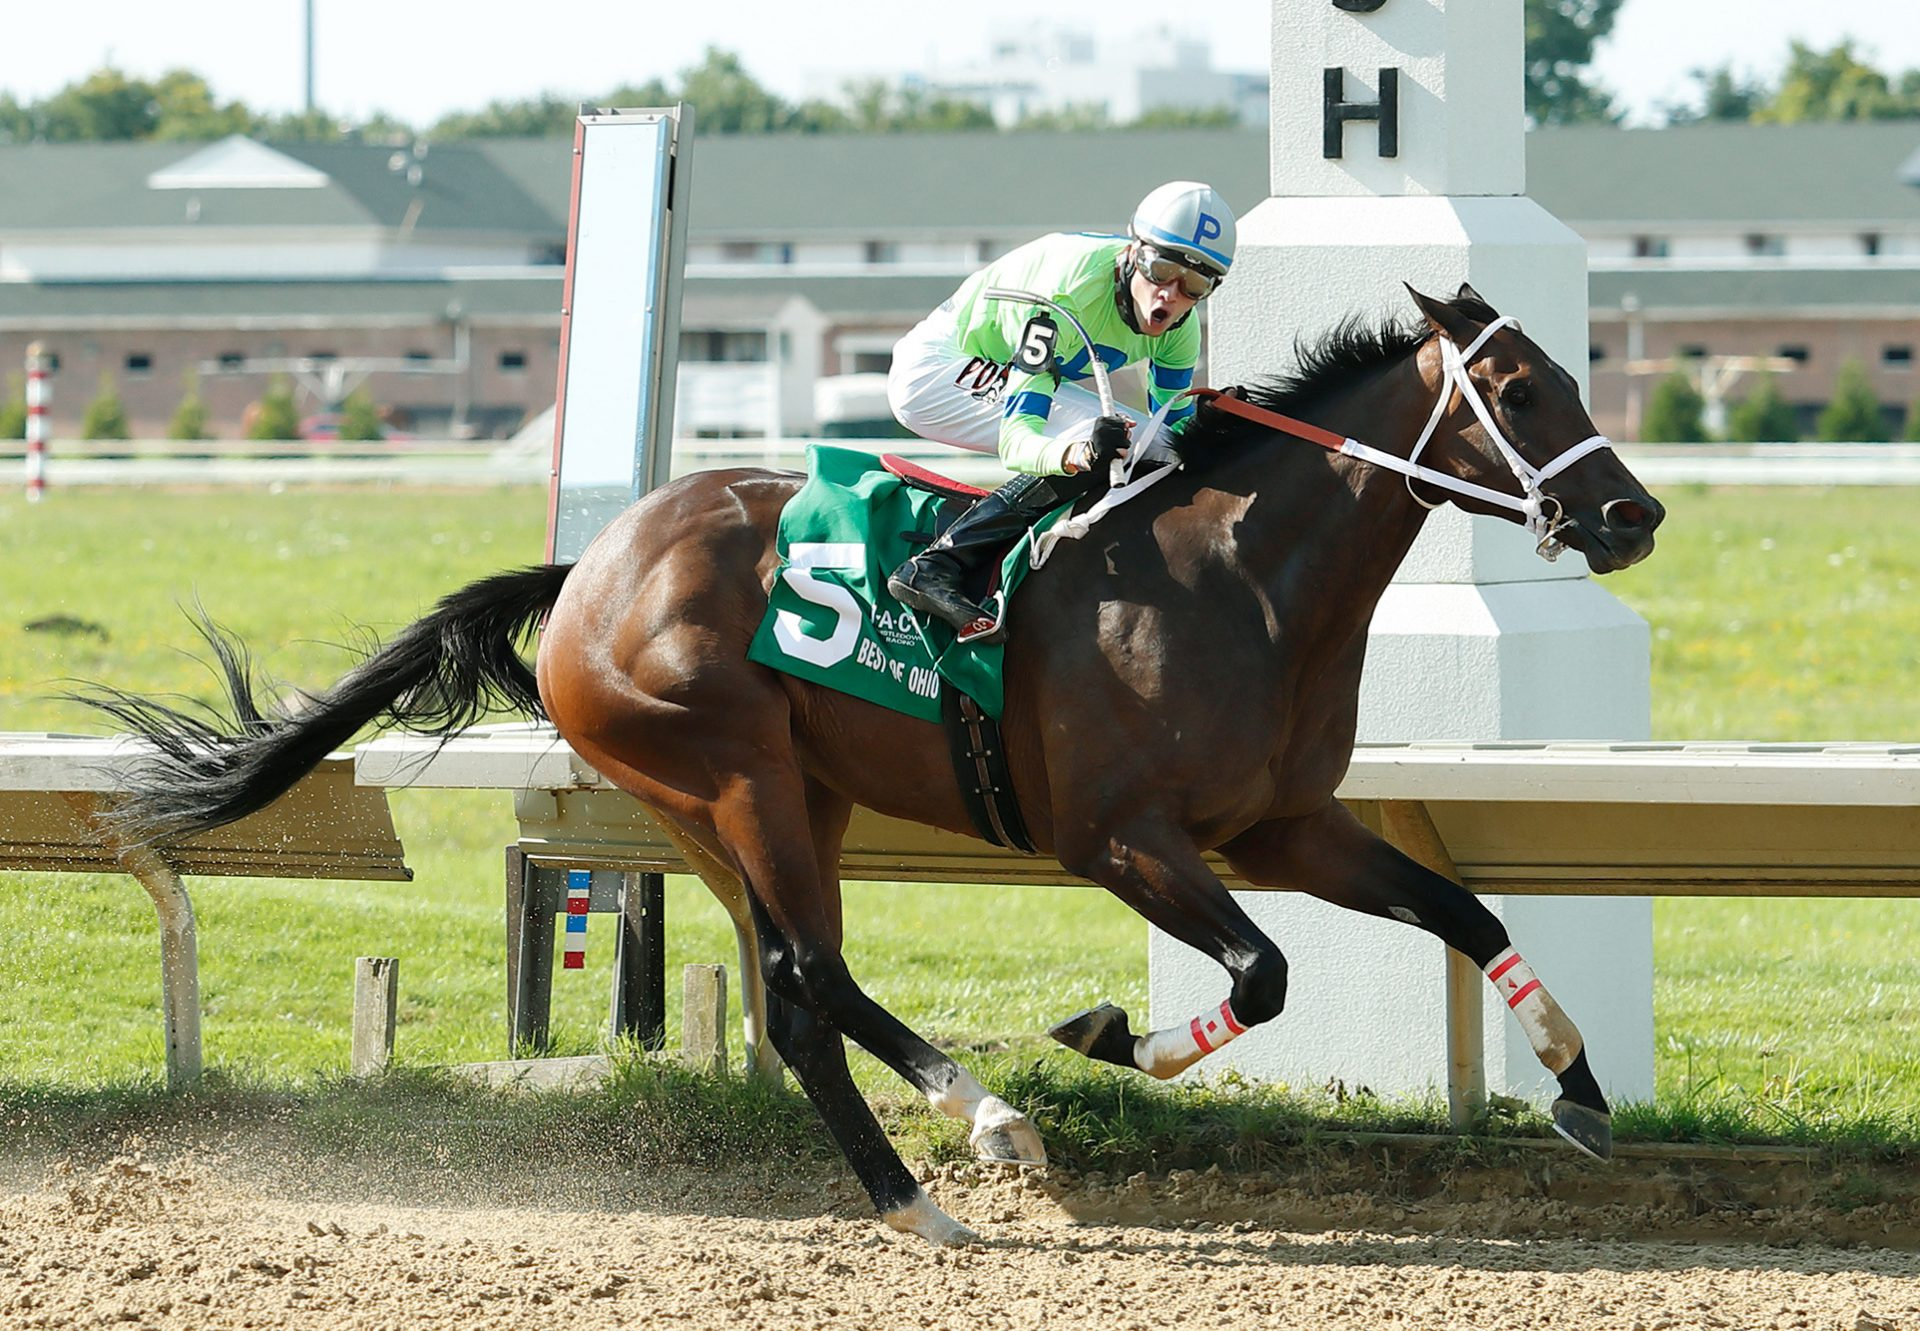 Mo Dont No (Uncle Mo) Wins Buckeye Cup at Thistledown